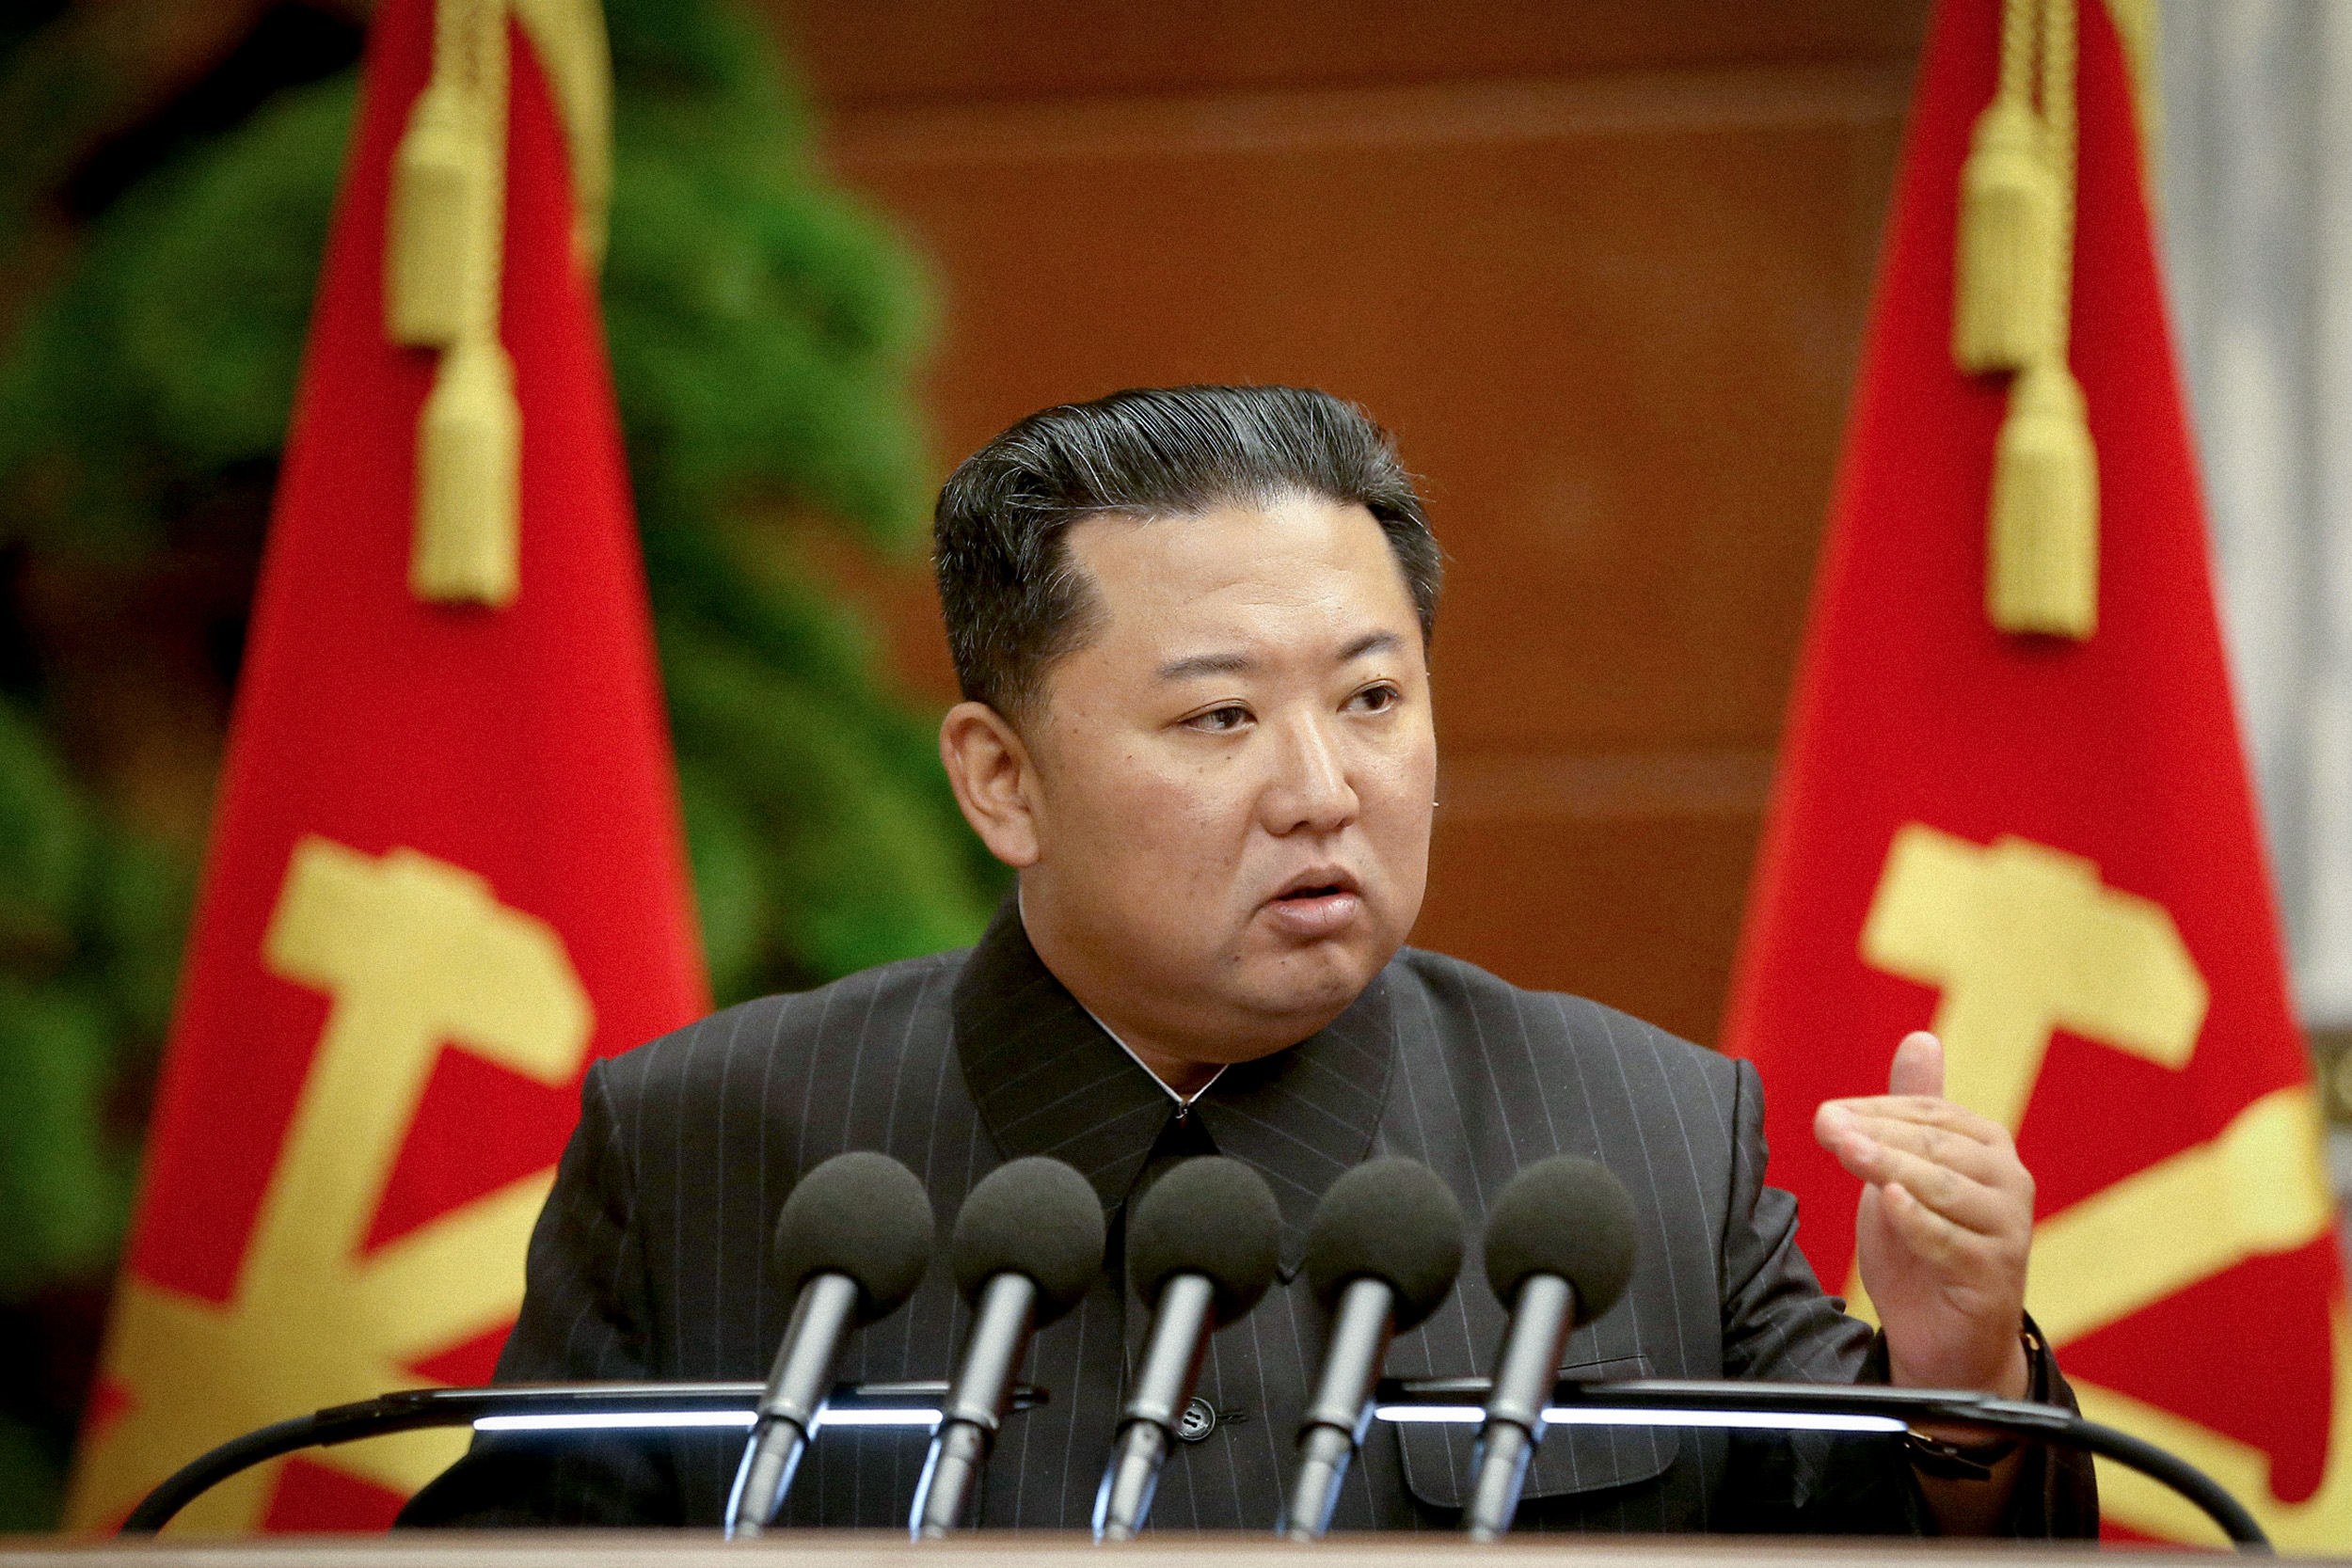 Kim Jong Un rejects vaccine offer to fight Covid North Korea 'style'